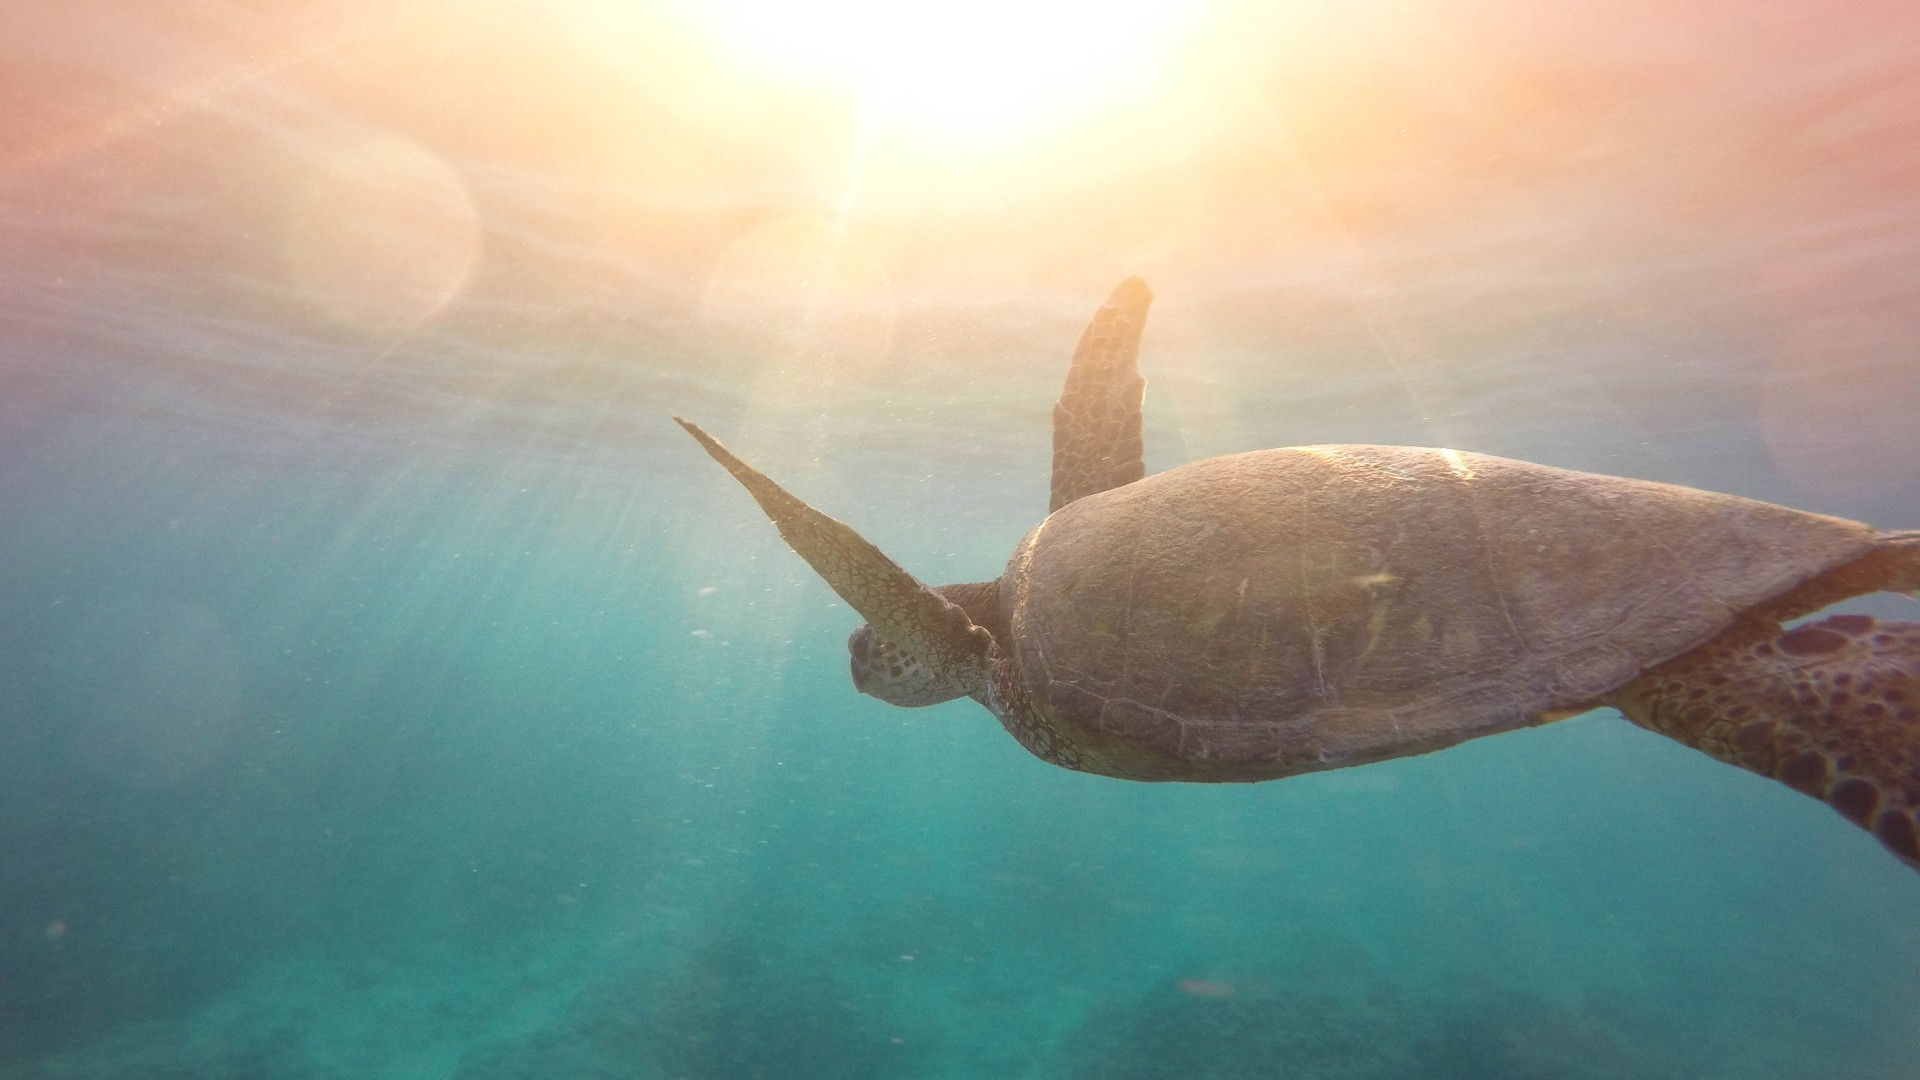 Love Birds Cute Wallpaper Turtle Underwater 4k Wallpapers Hd Wallpapers Id 21789